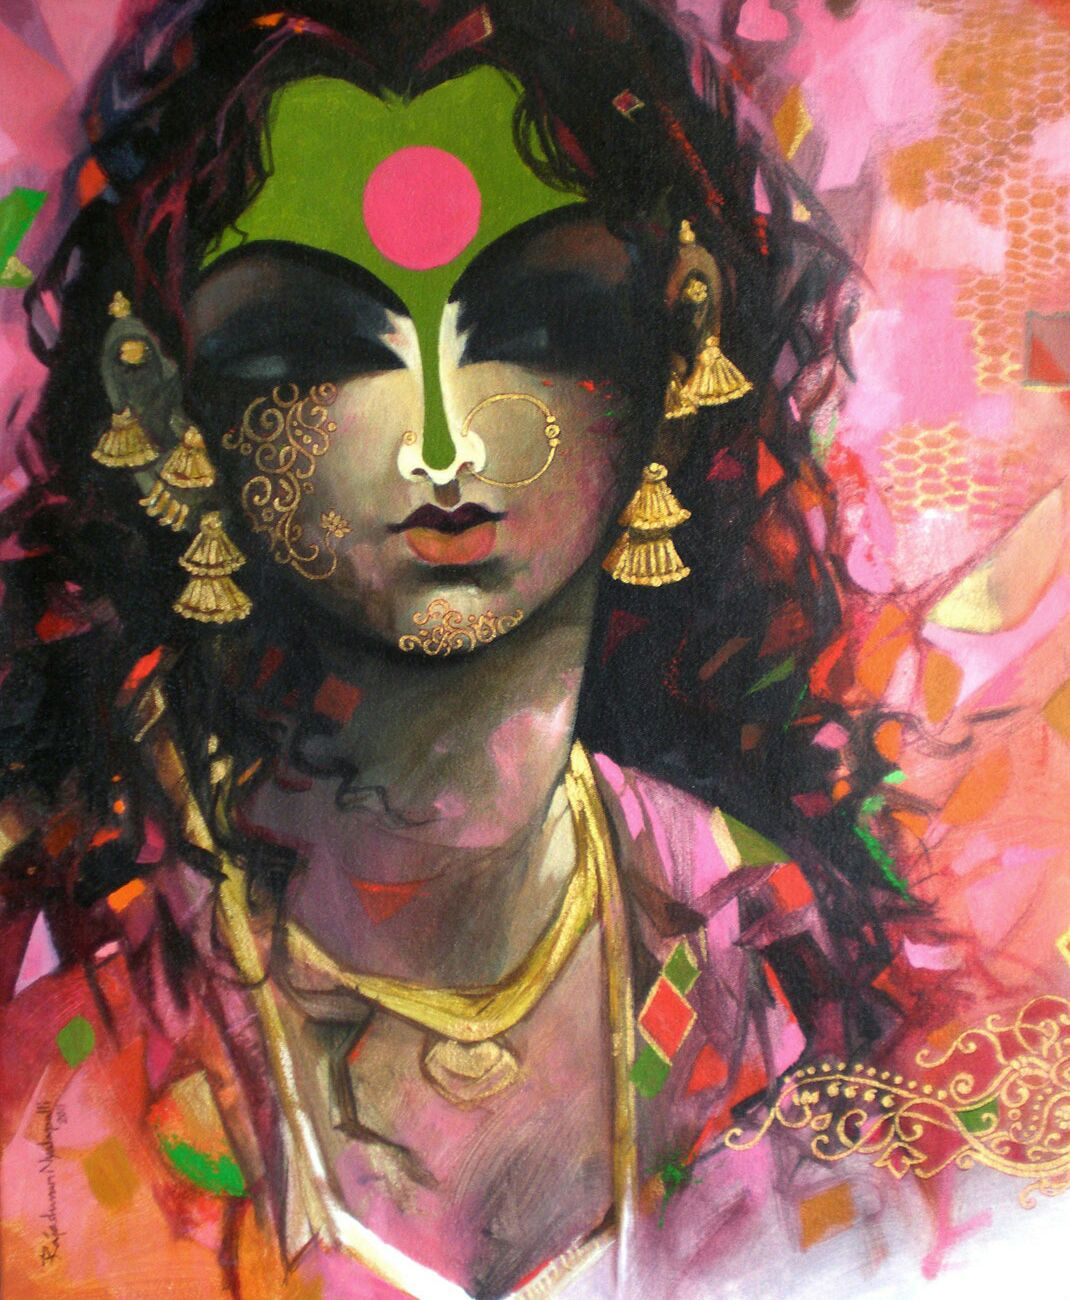 indian paintings by rajeshwar nyalapalli